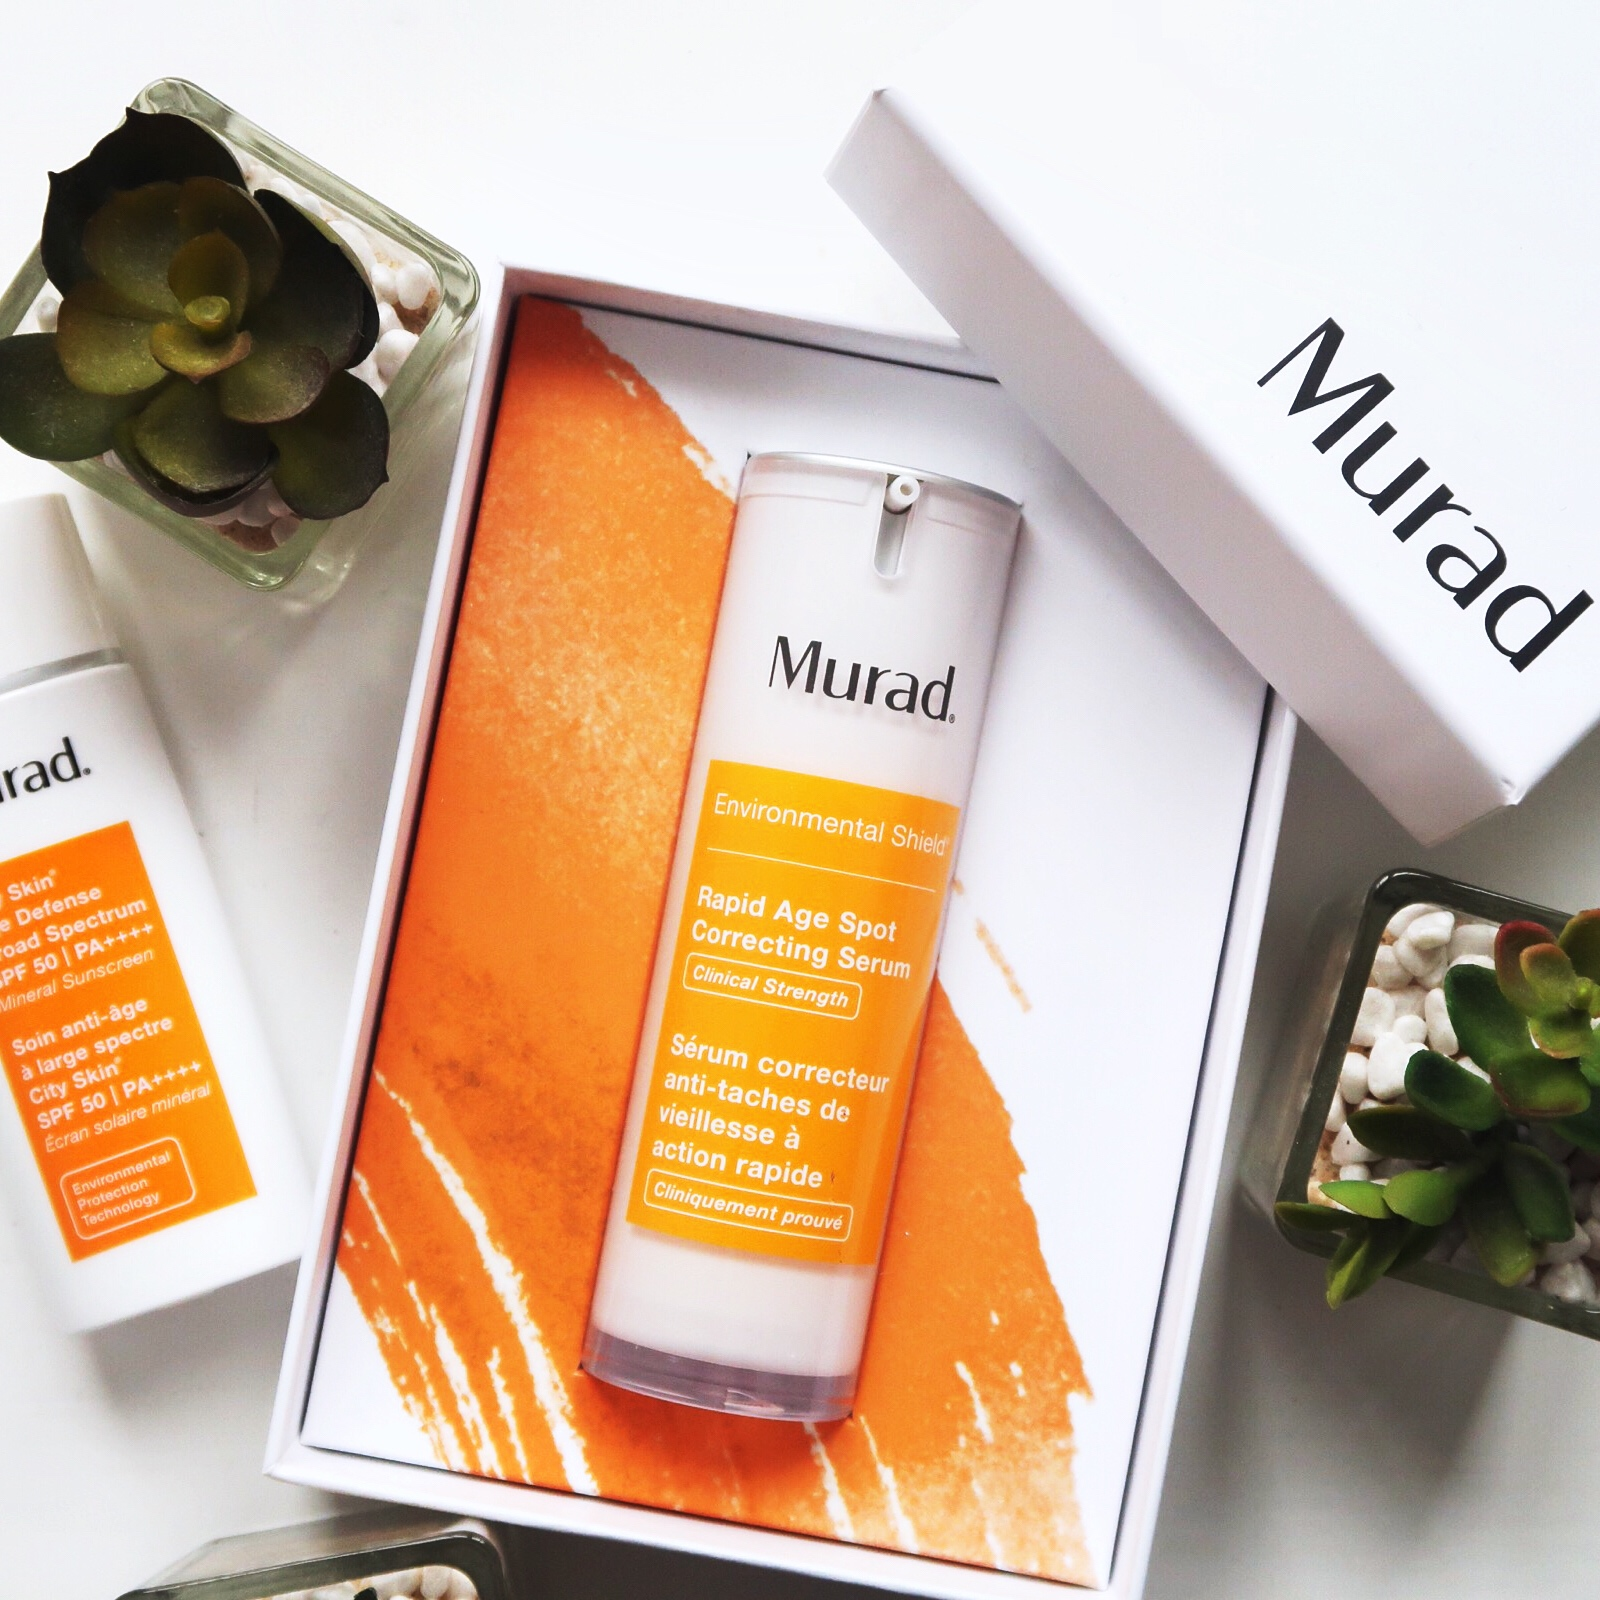 Murad Rapid Age Spot Correcting Serum by Murad